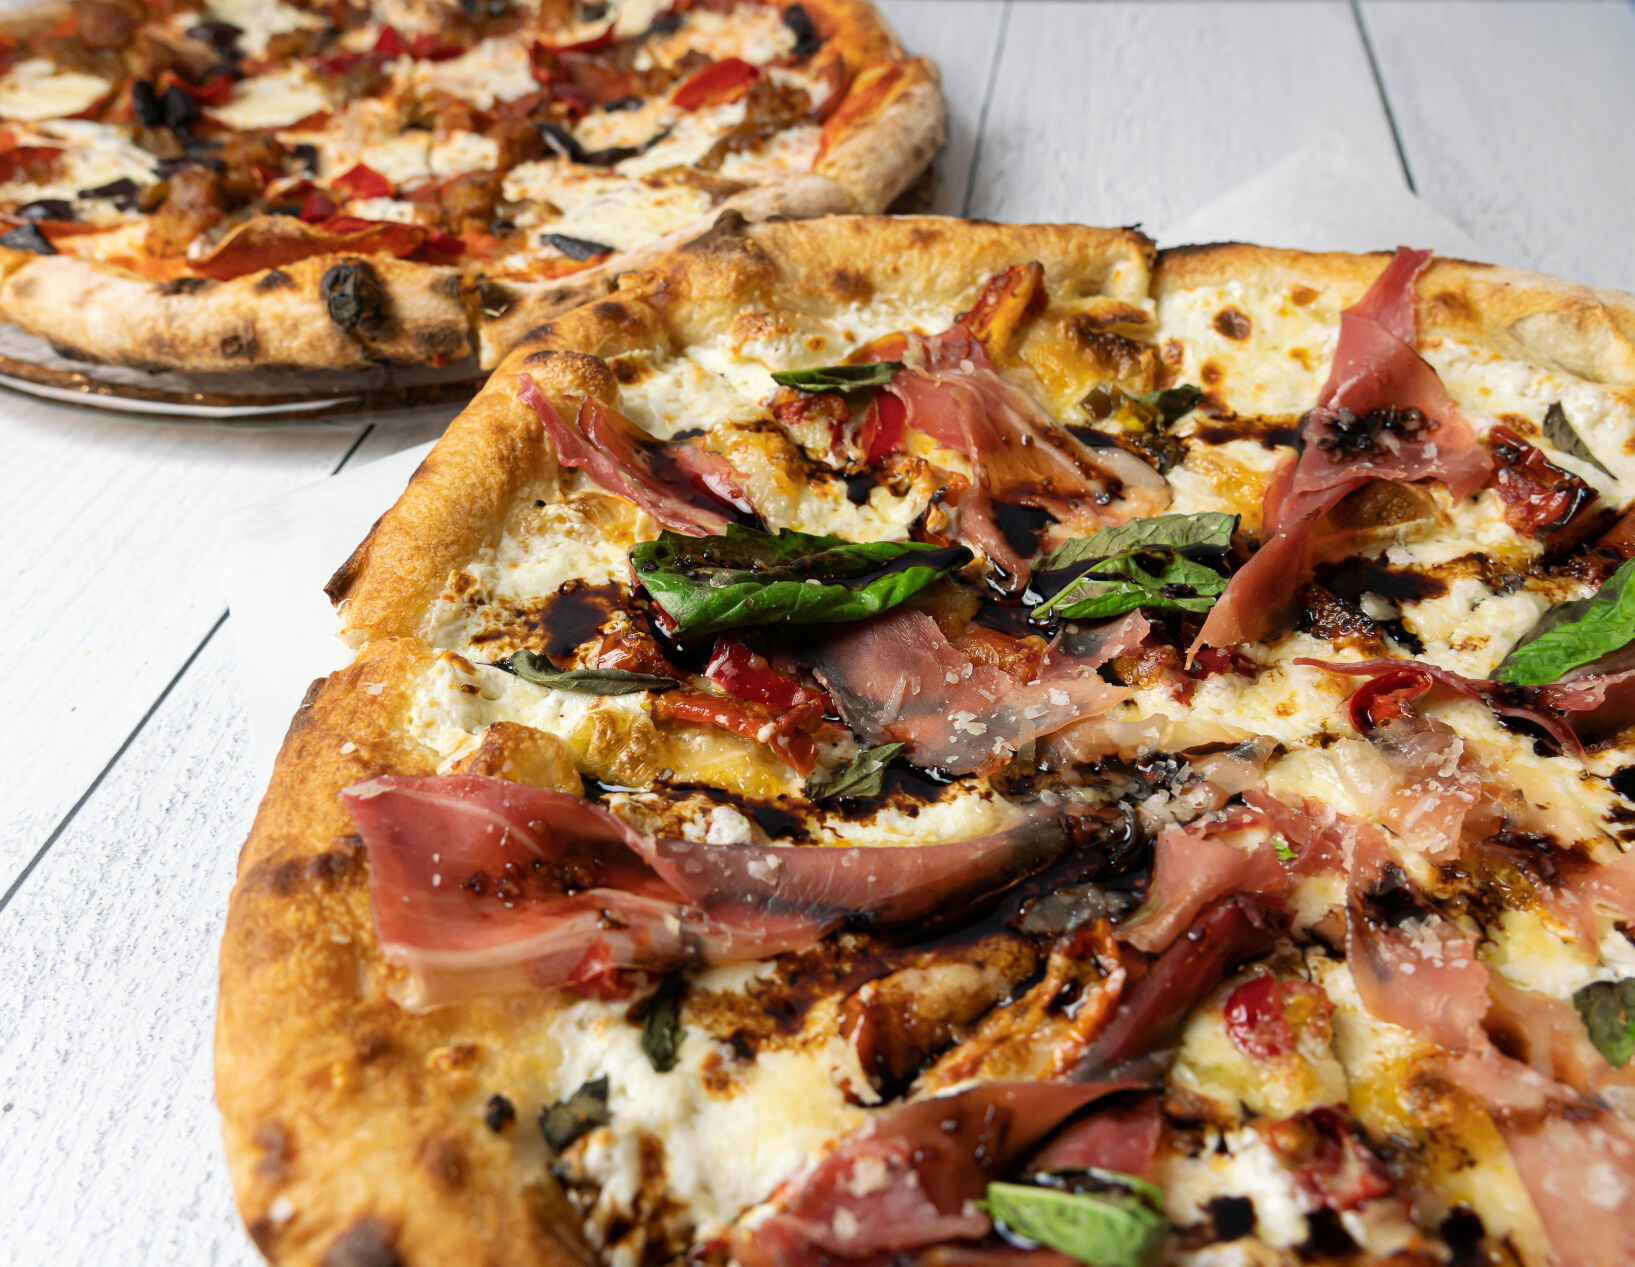 Four New Pizza Restaurants To Try In Central Oregon Lifestyle Bendbulletin Com